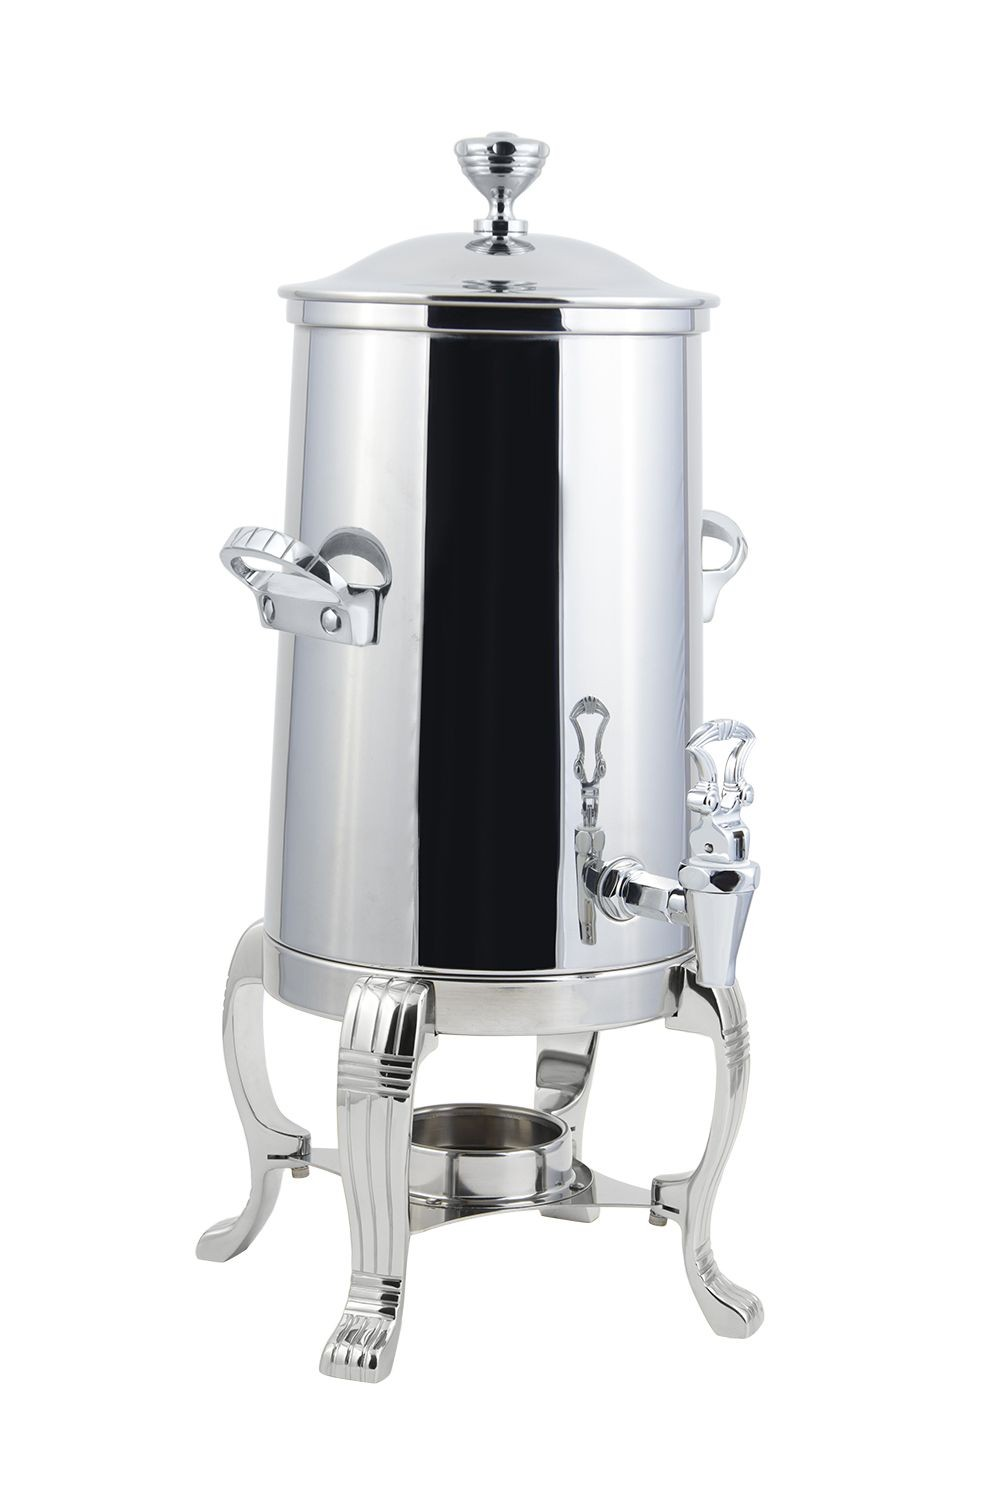 Bon Chef 41005C Aurora Single Wall Non-Insulated Coffee Urn with Chrome Trim, 5 1/2 Gallon